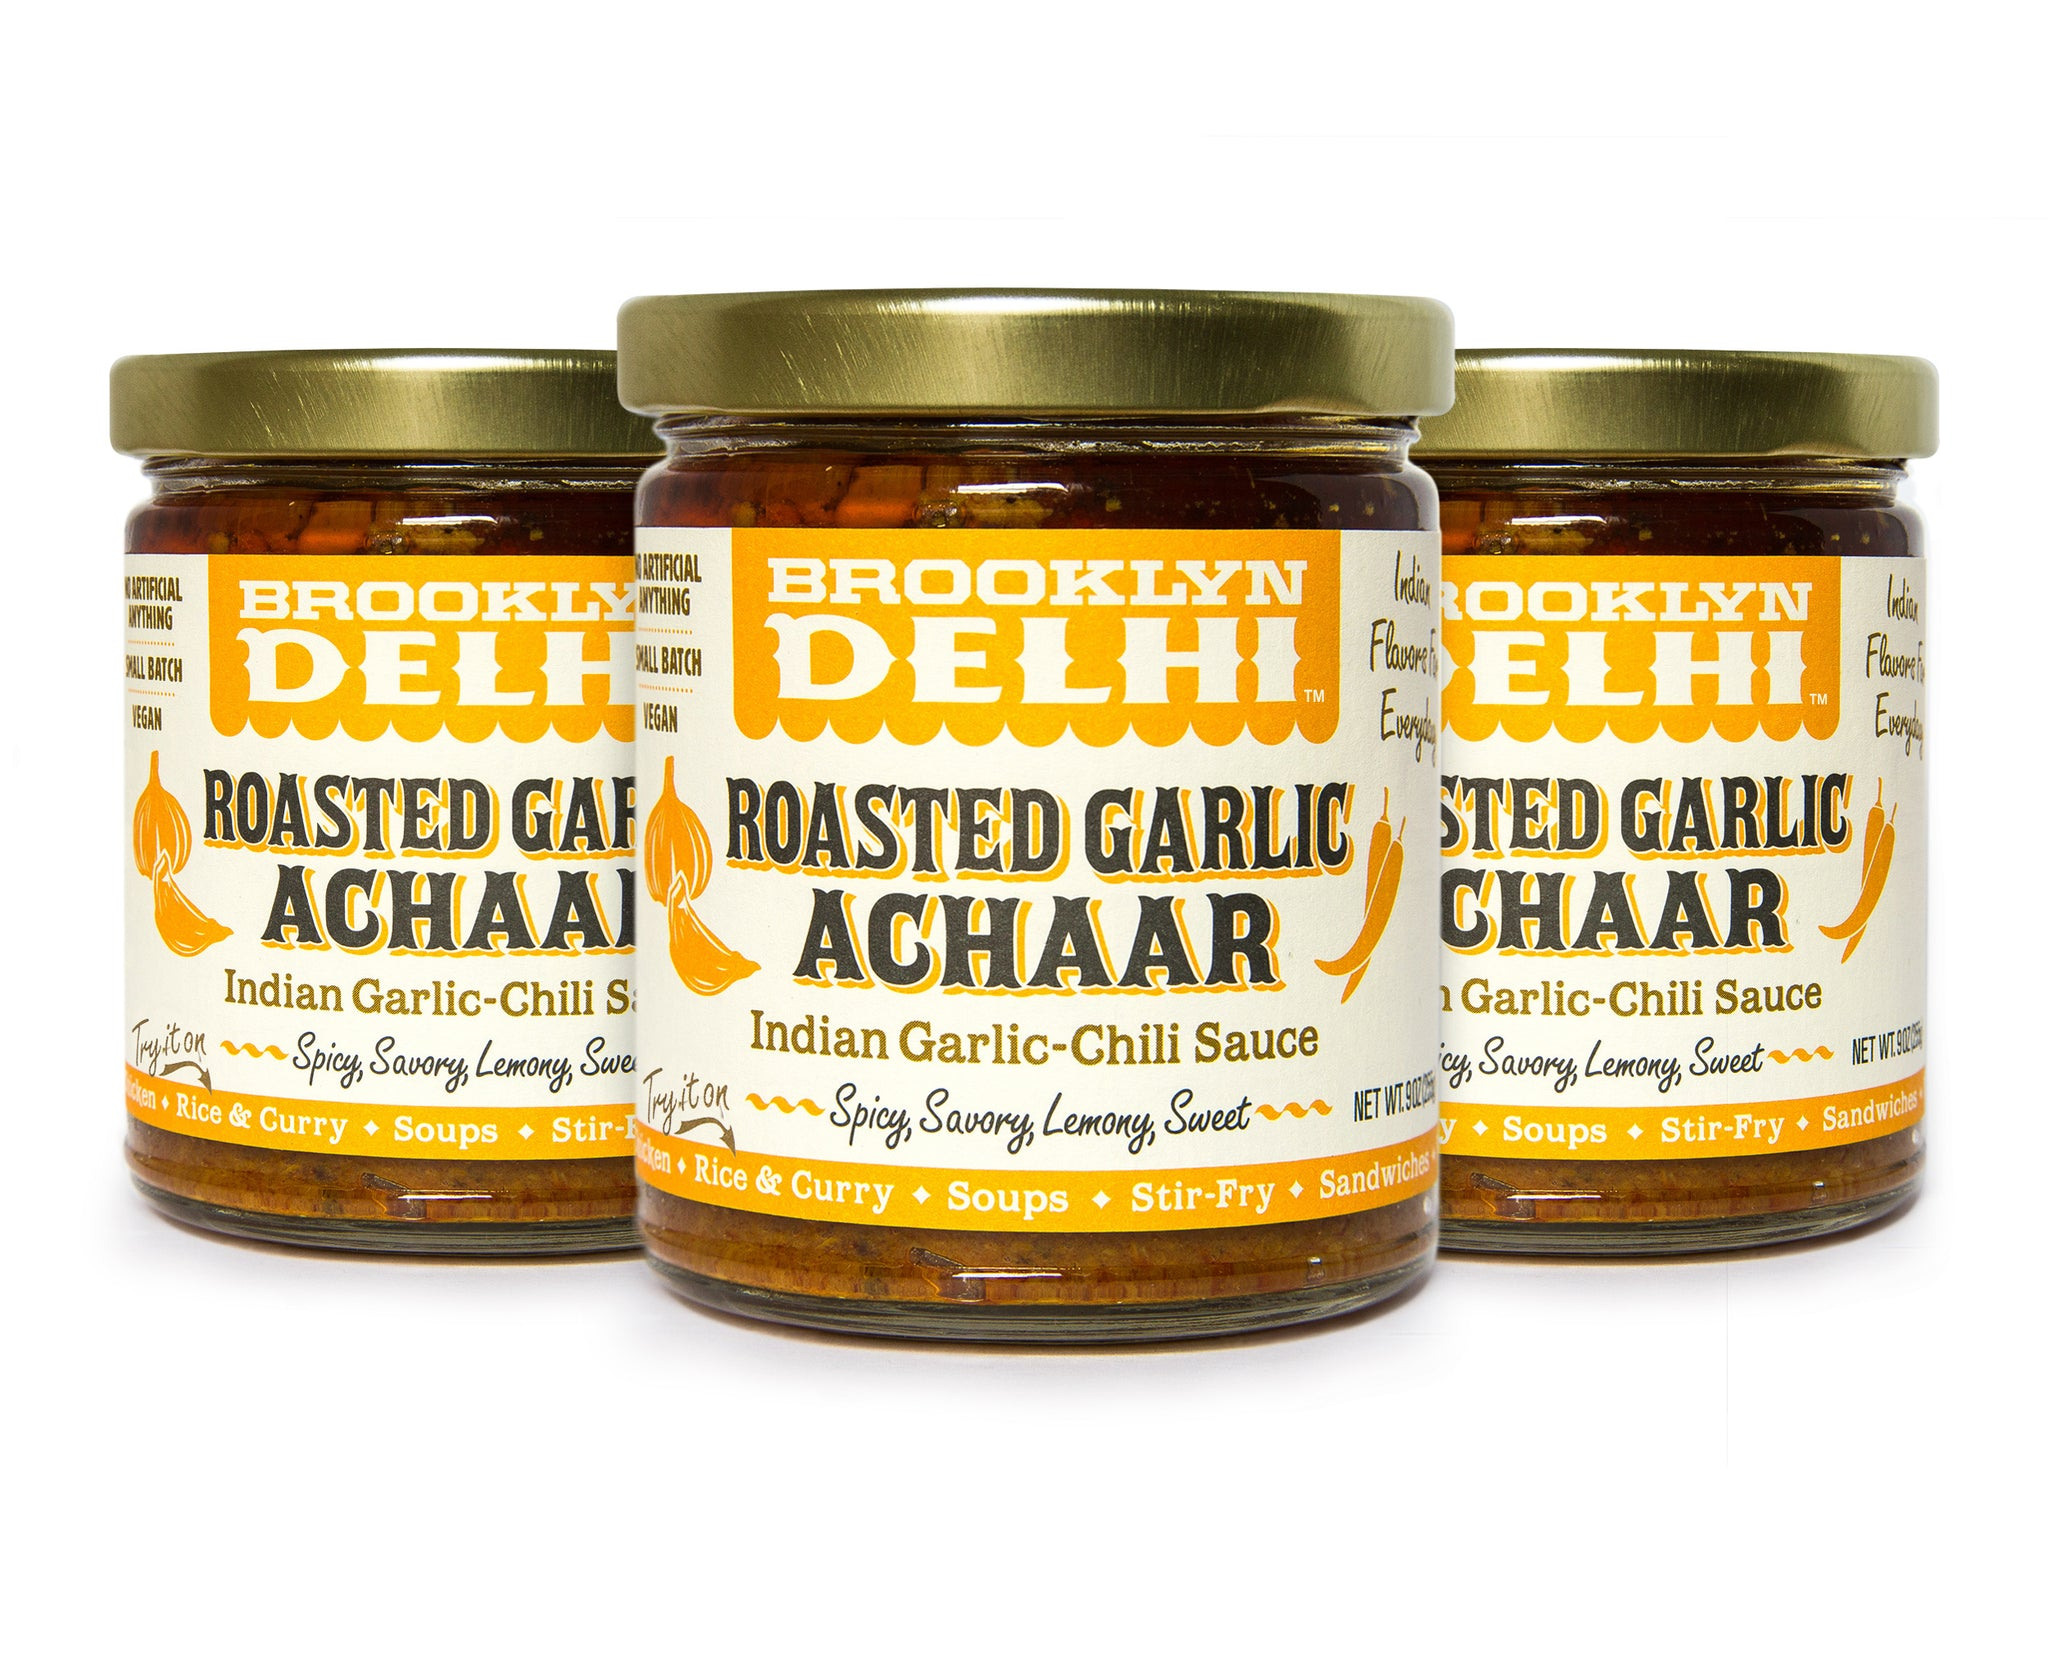 Roasted Garlic Achaar 3-Pack